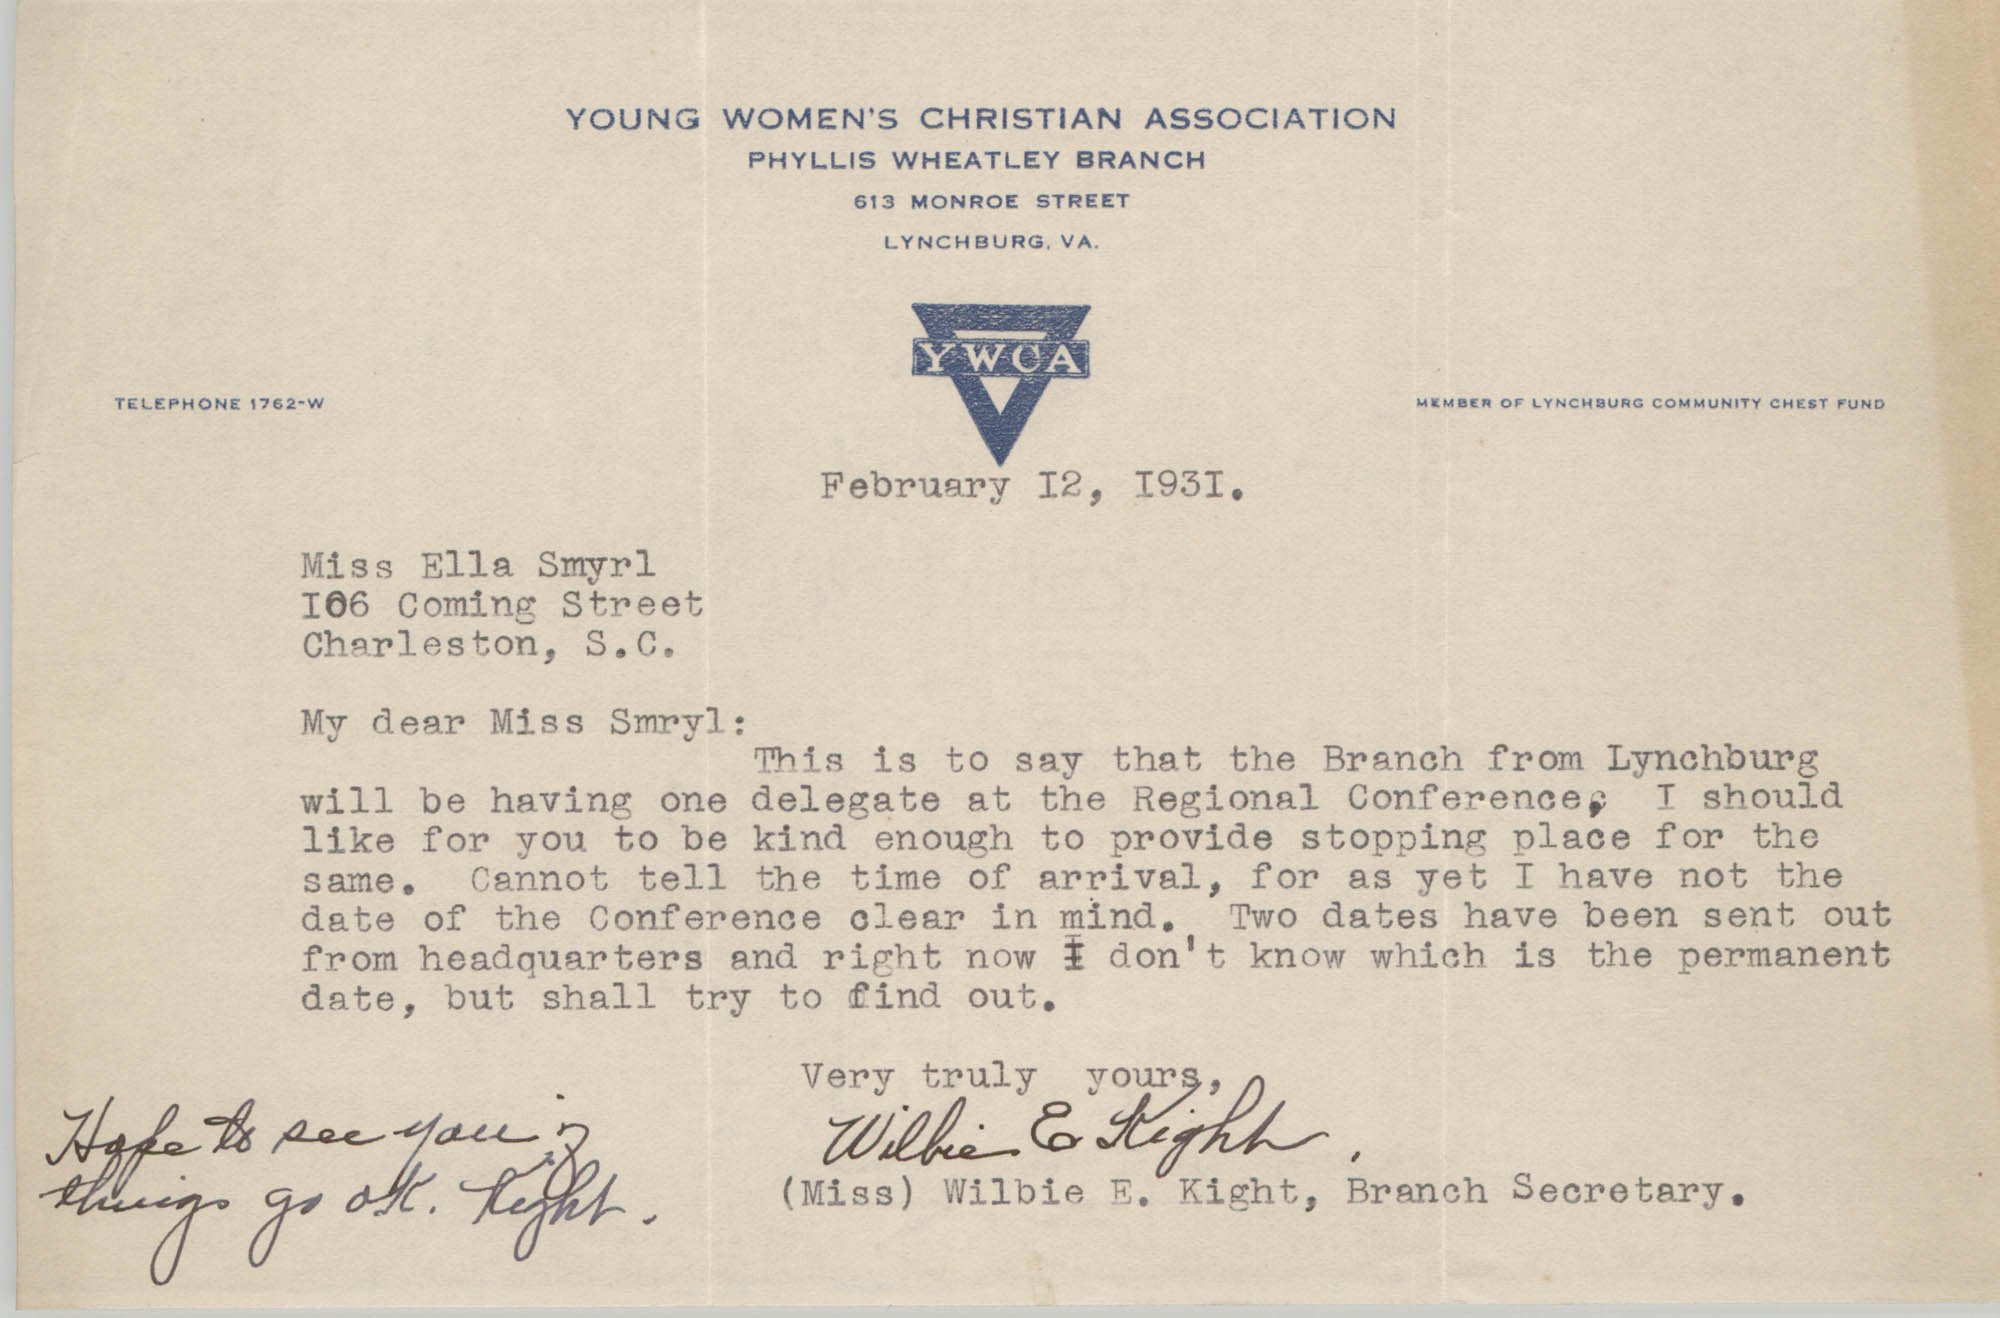 Letter from Wilbie E. Kight to Ella L. Smyrl, February 12, 1931